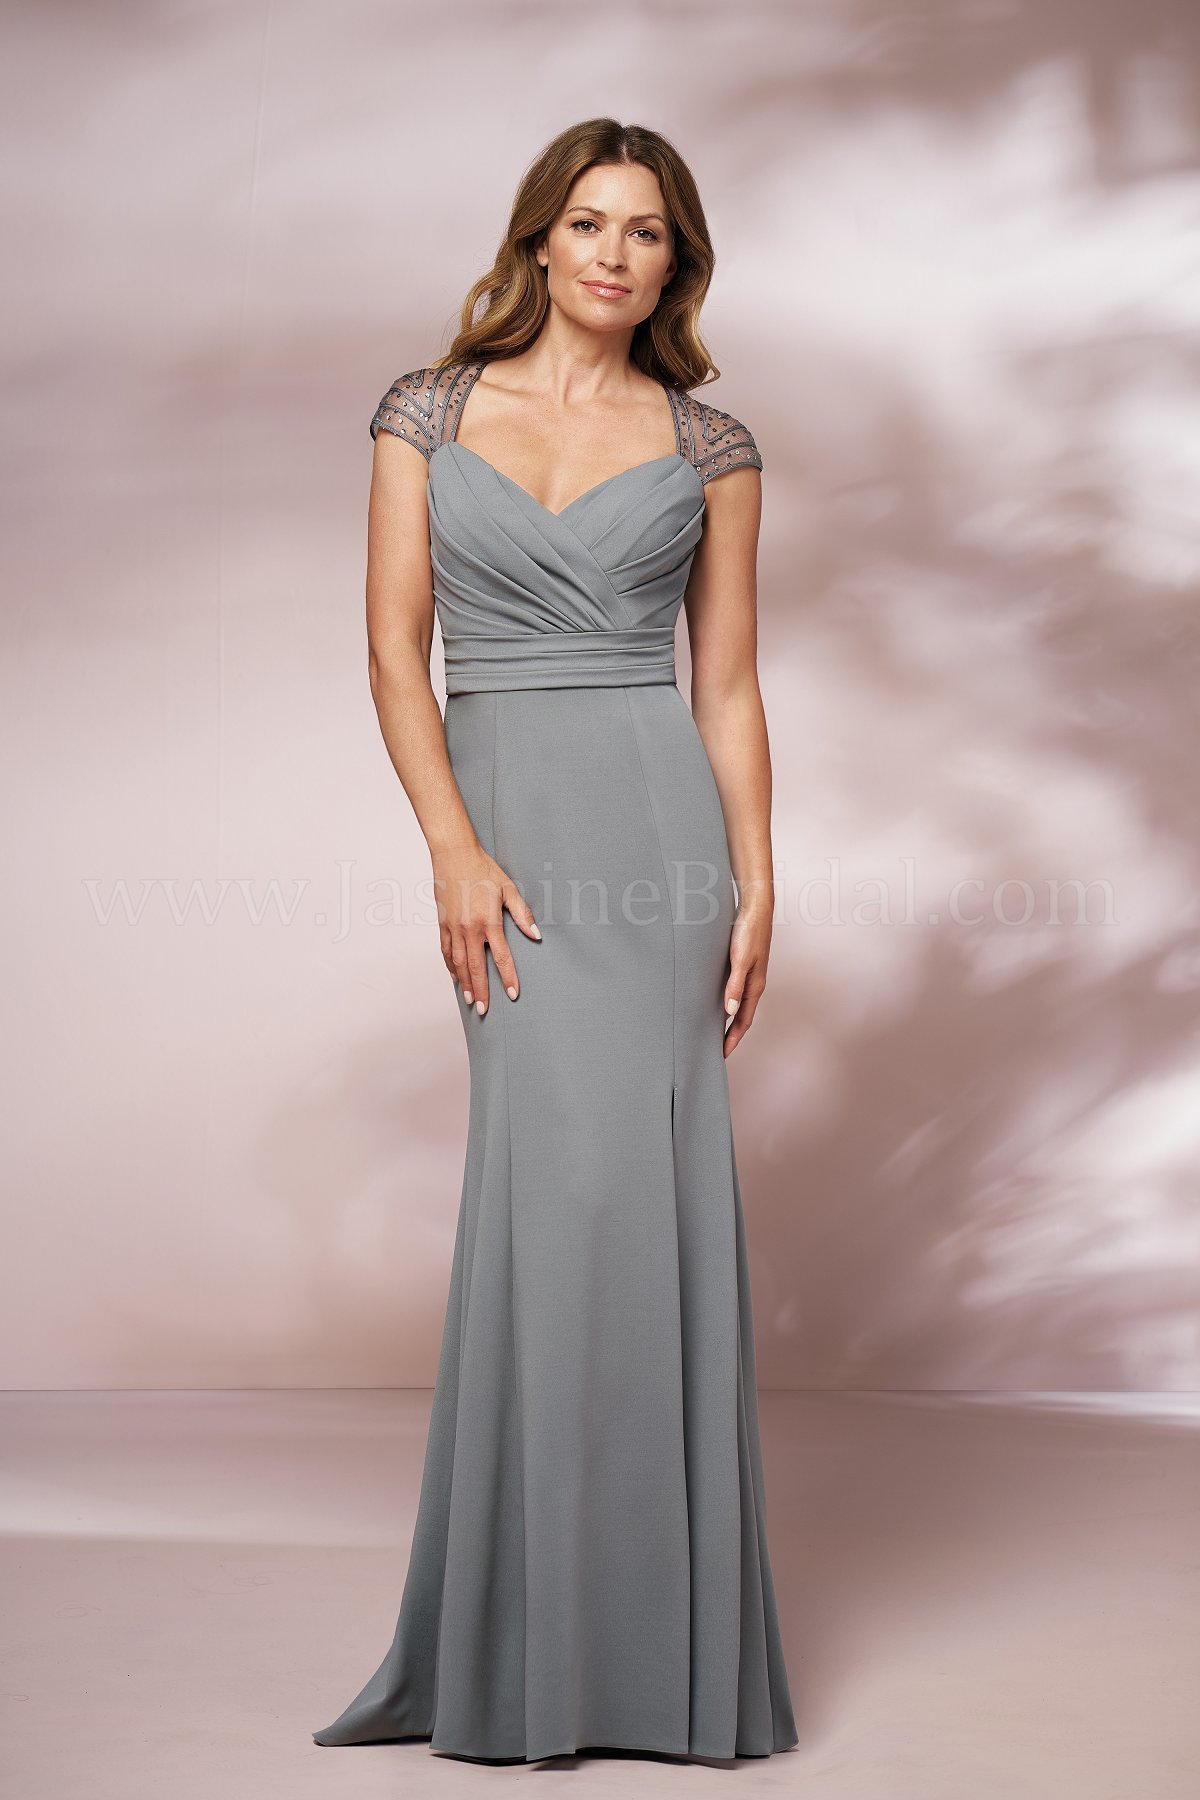 mother-of-the-bride-dresses-J205006-F